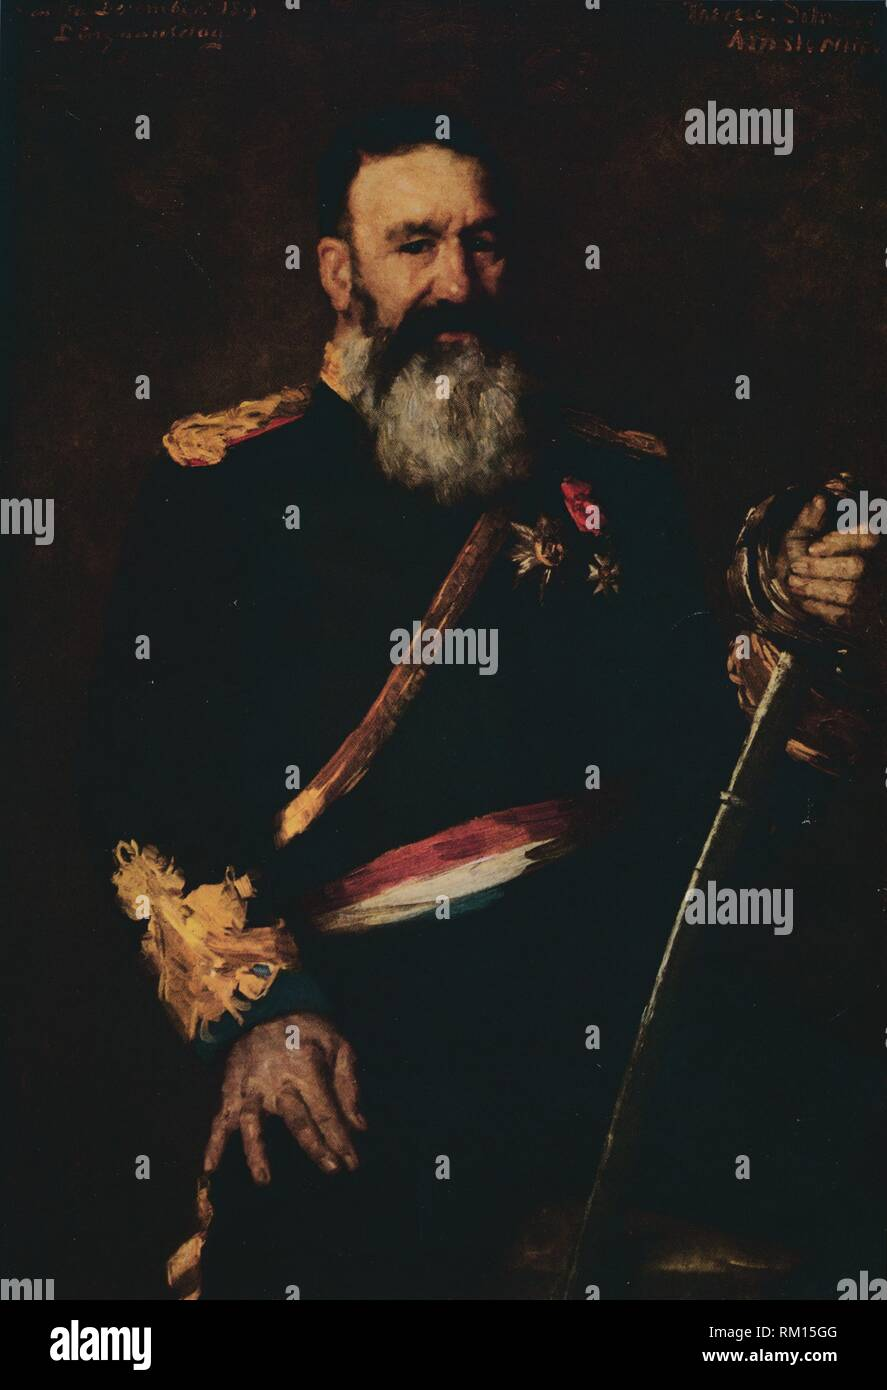 """'General Piet Joubert, Commander-In-Chief of the Dutch South African Republic', 1890. (1914). Portrait of Afrikaner soldier and statesman Petrus Jakobus Joubert (1831-1900), Commander-in-chief of the Boers, Vice-president of the Transvaal. From """"Bibby's Annual 1914"""", edited by Joseph Bibby. [J. Bibby & Sons, London, 1914] - Stock Image"""